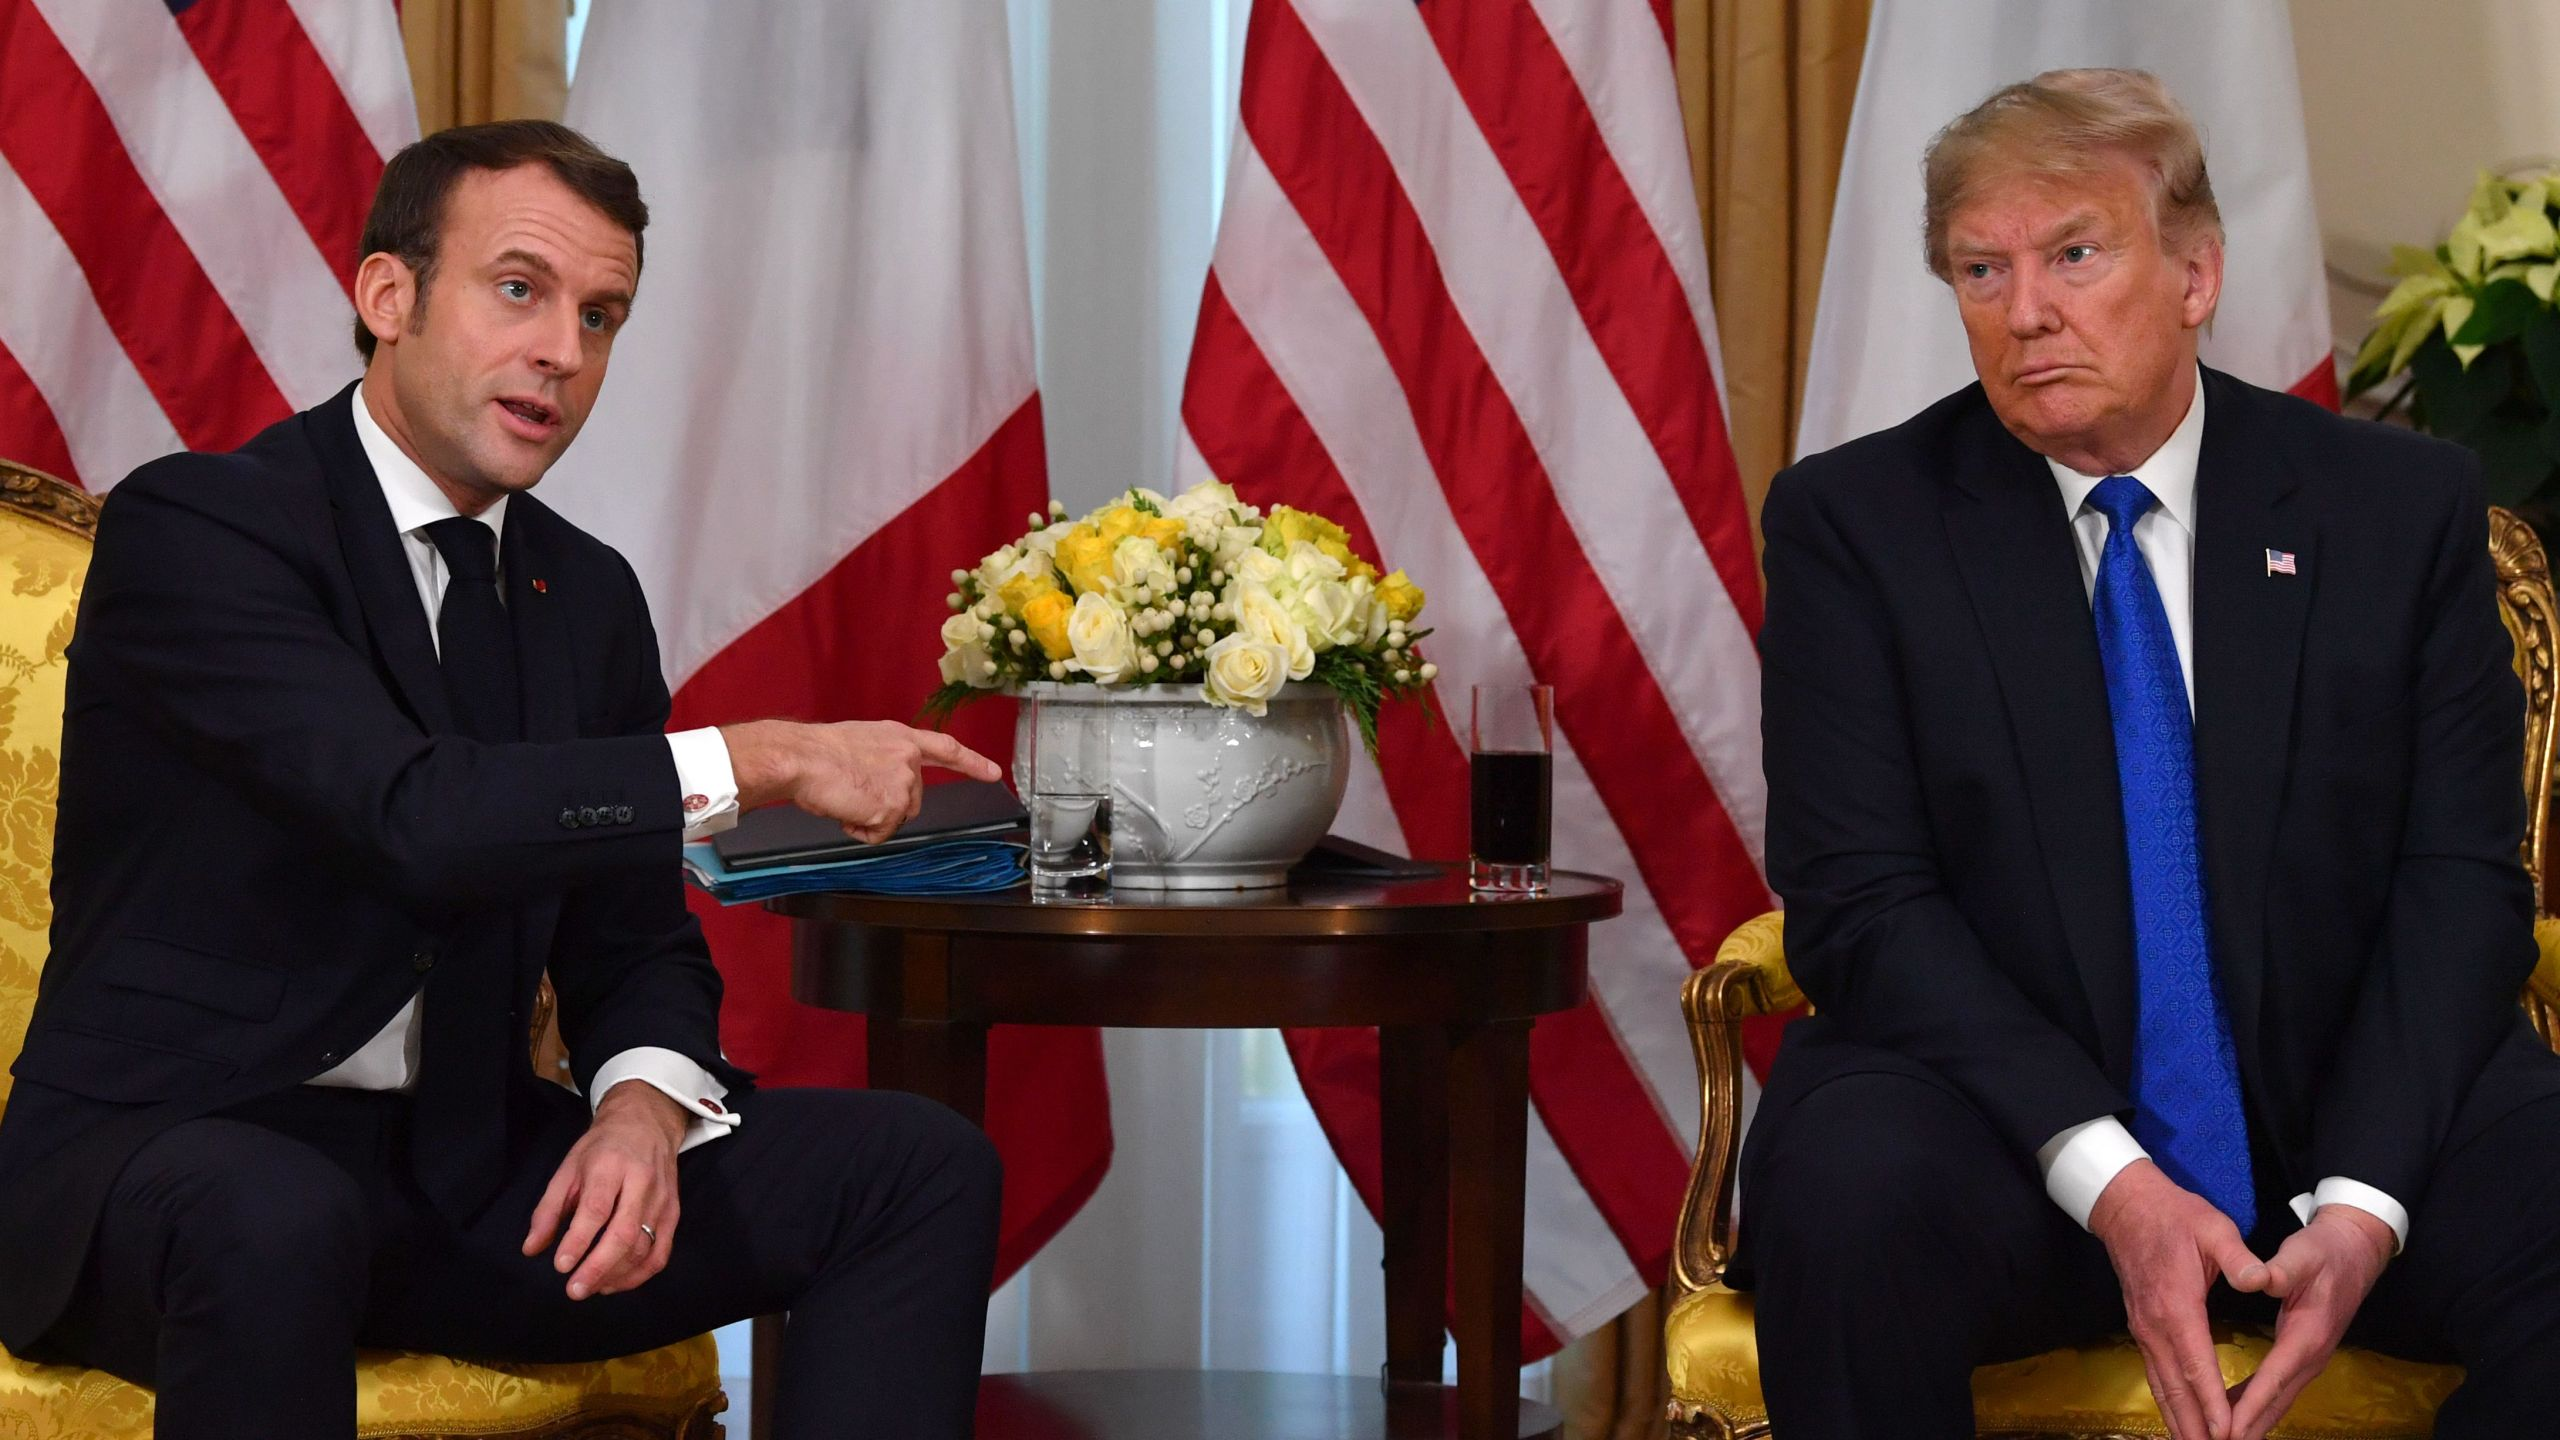 President Donald Trump, right, meets French President Emmanuel Macron at Winfield House, London on Dec. 3, 2019. (Credit: NICHOLAS KAMM/AFP via Getty Images)